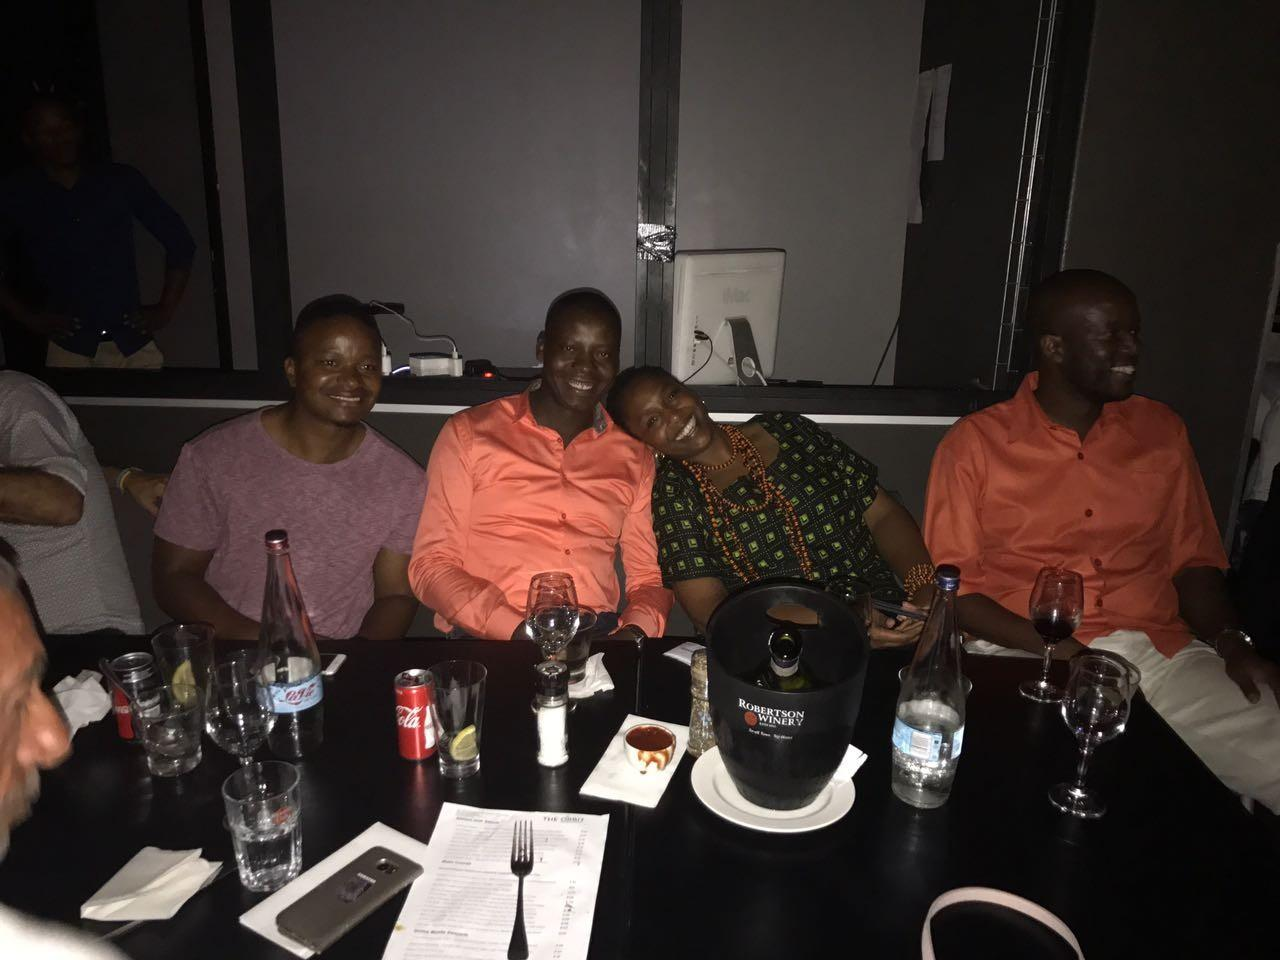 Joburg Fellows enjoy a jazz night out at The Orbit